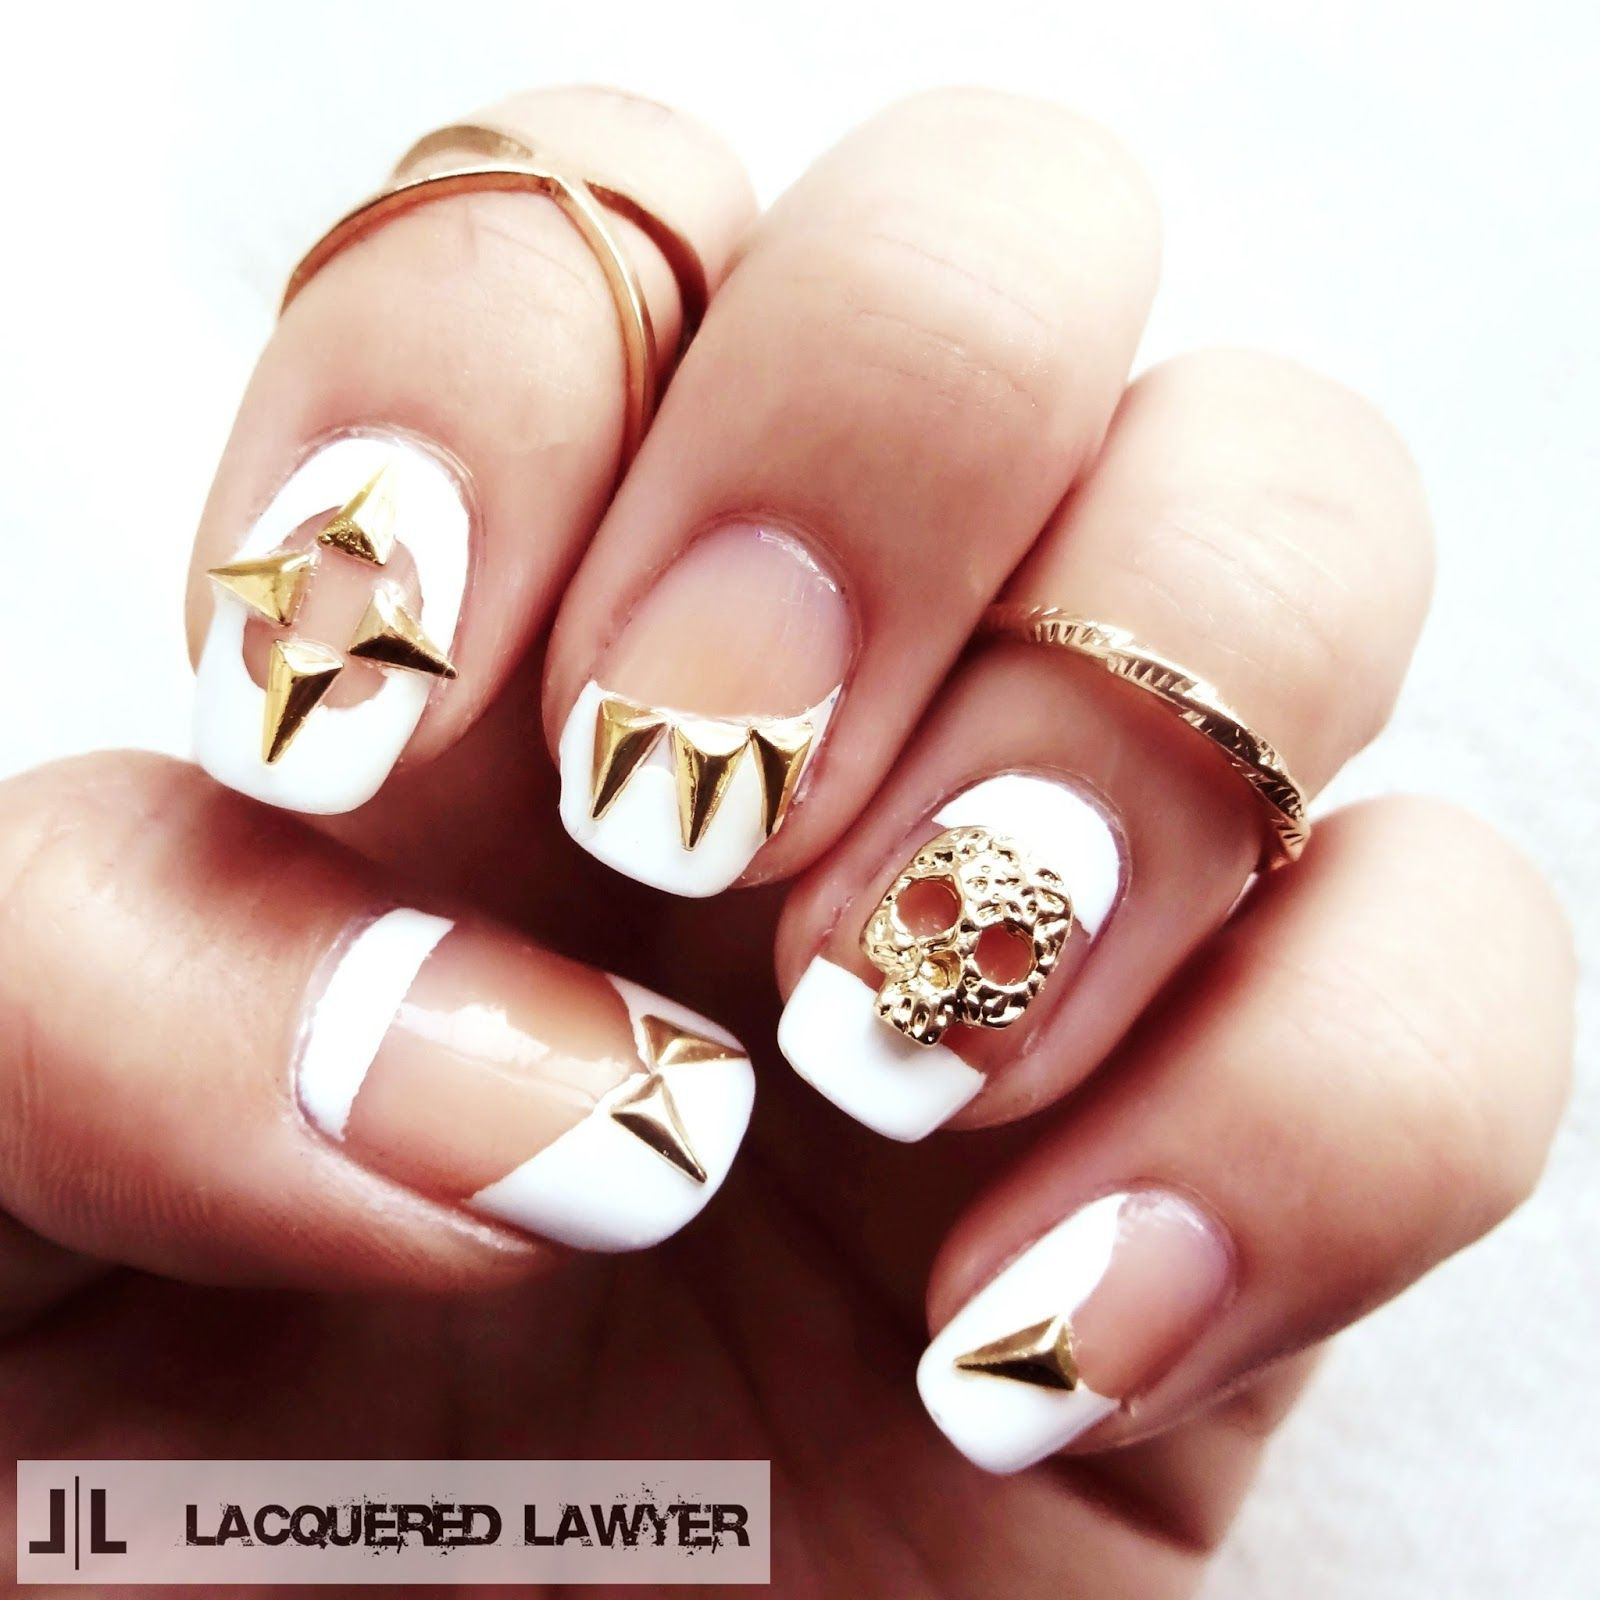 Lacquered Lawyer Nail Art Blog Very Cool Skulls And Spikes With Negative E Design X